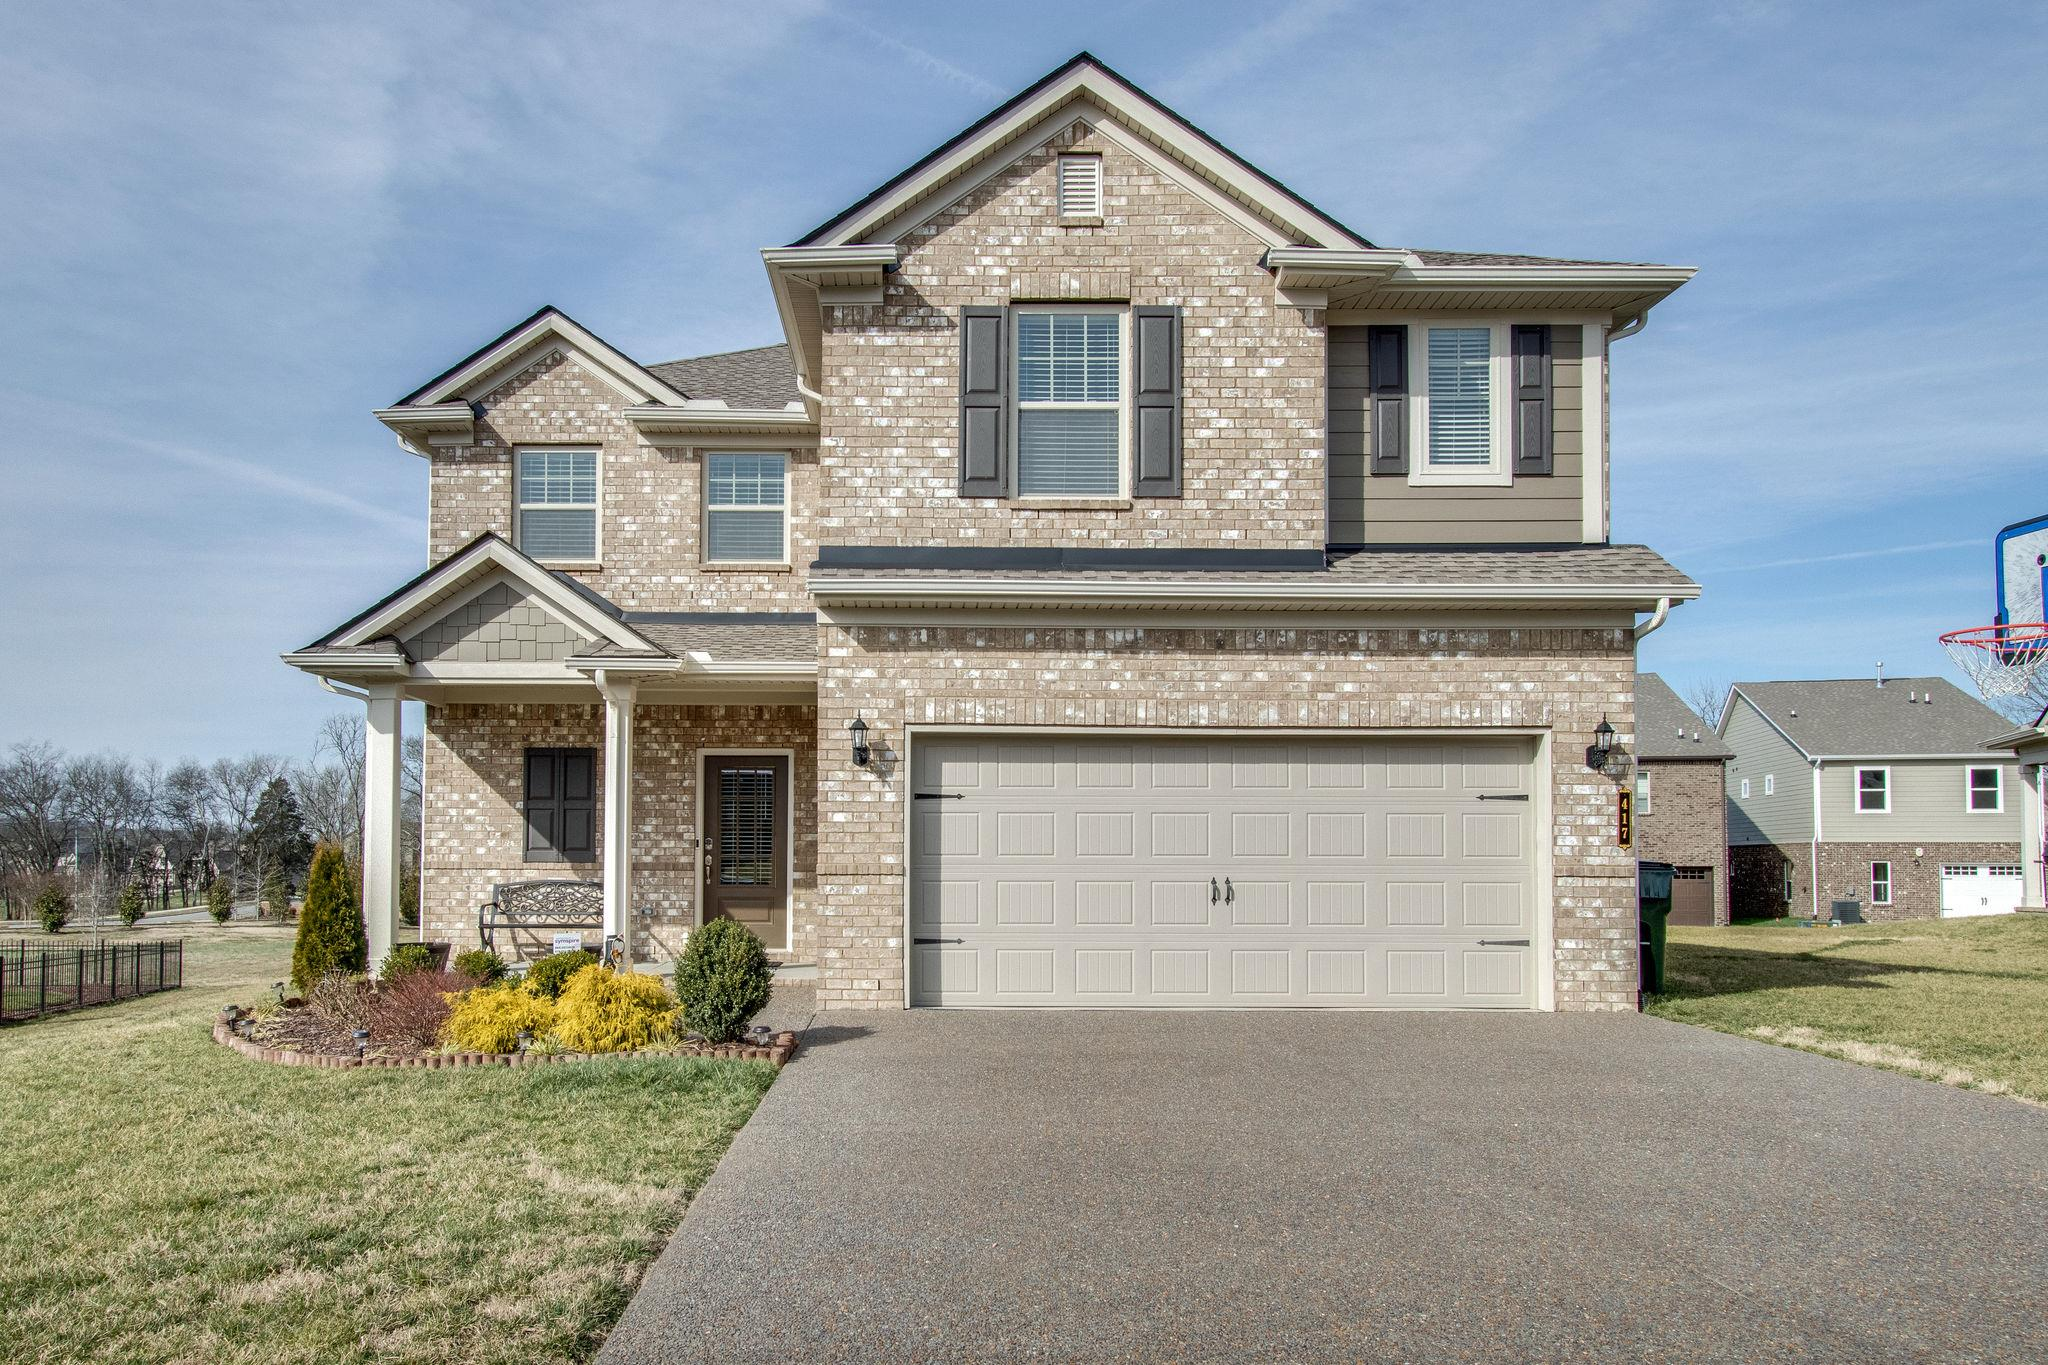 417 Blackthorn Ln 37066 - One of Gallatin Homes for Sale